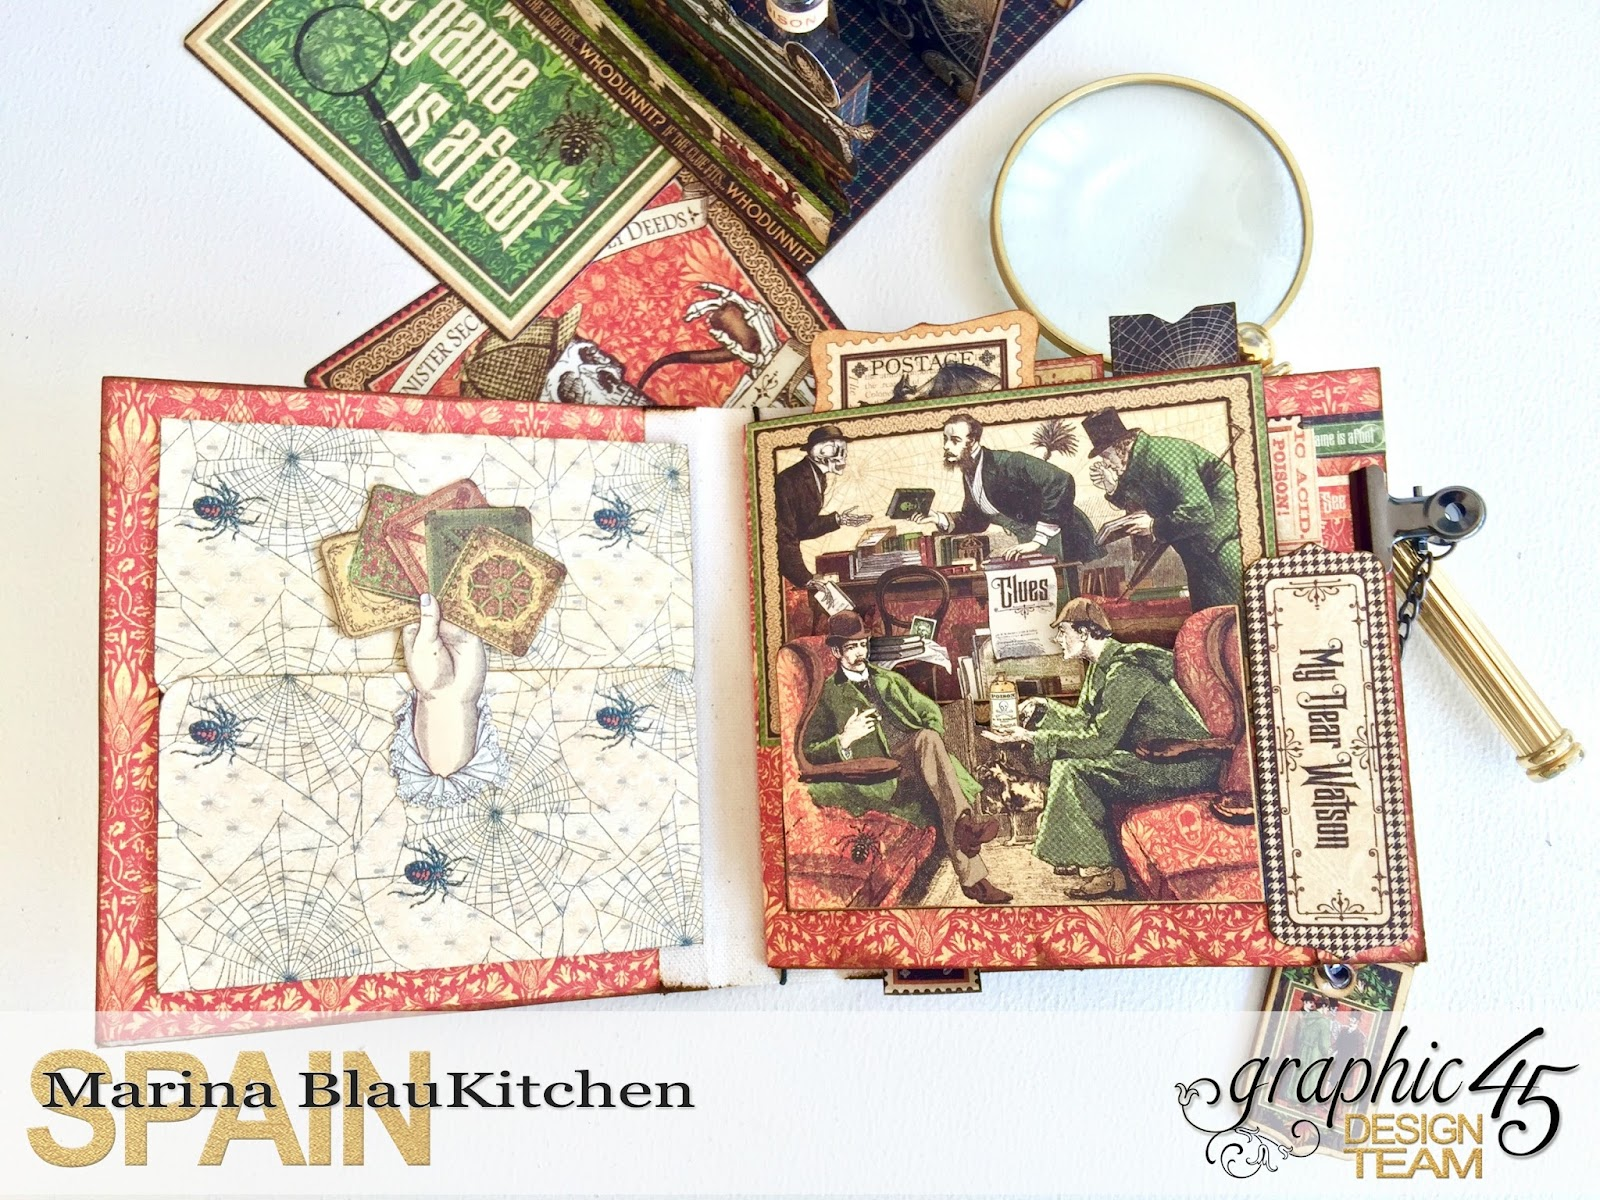 Stand and Mini Album Master Detective by Marina Blaukitchen Product by Graphic 45 photo 10.jpg